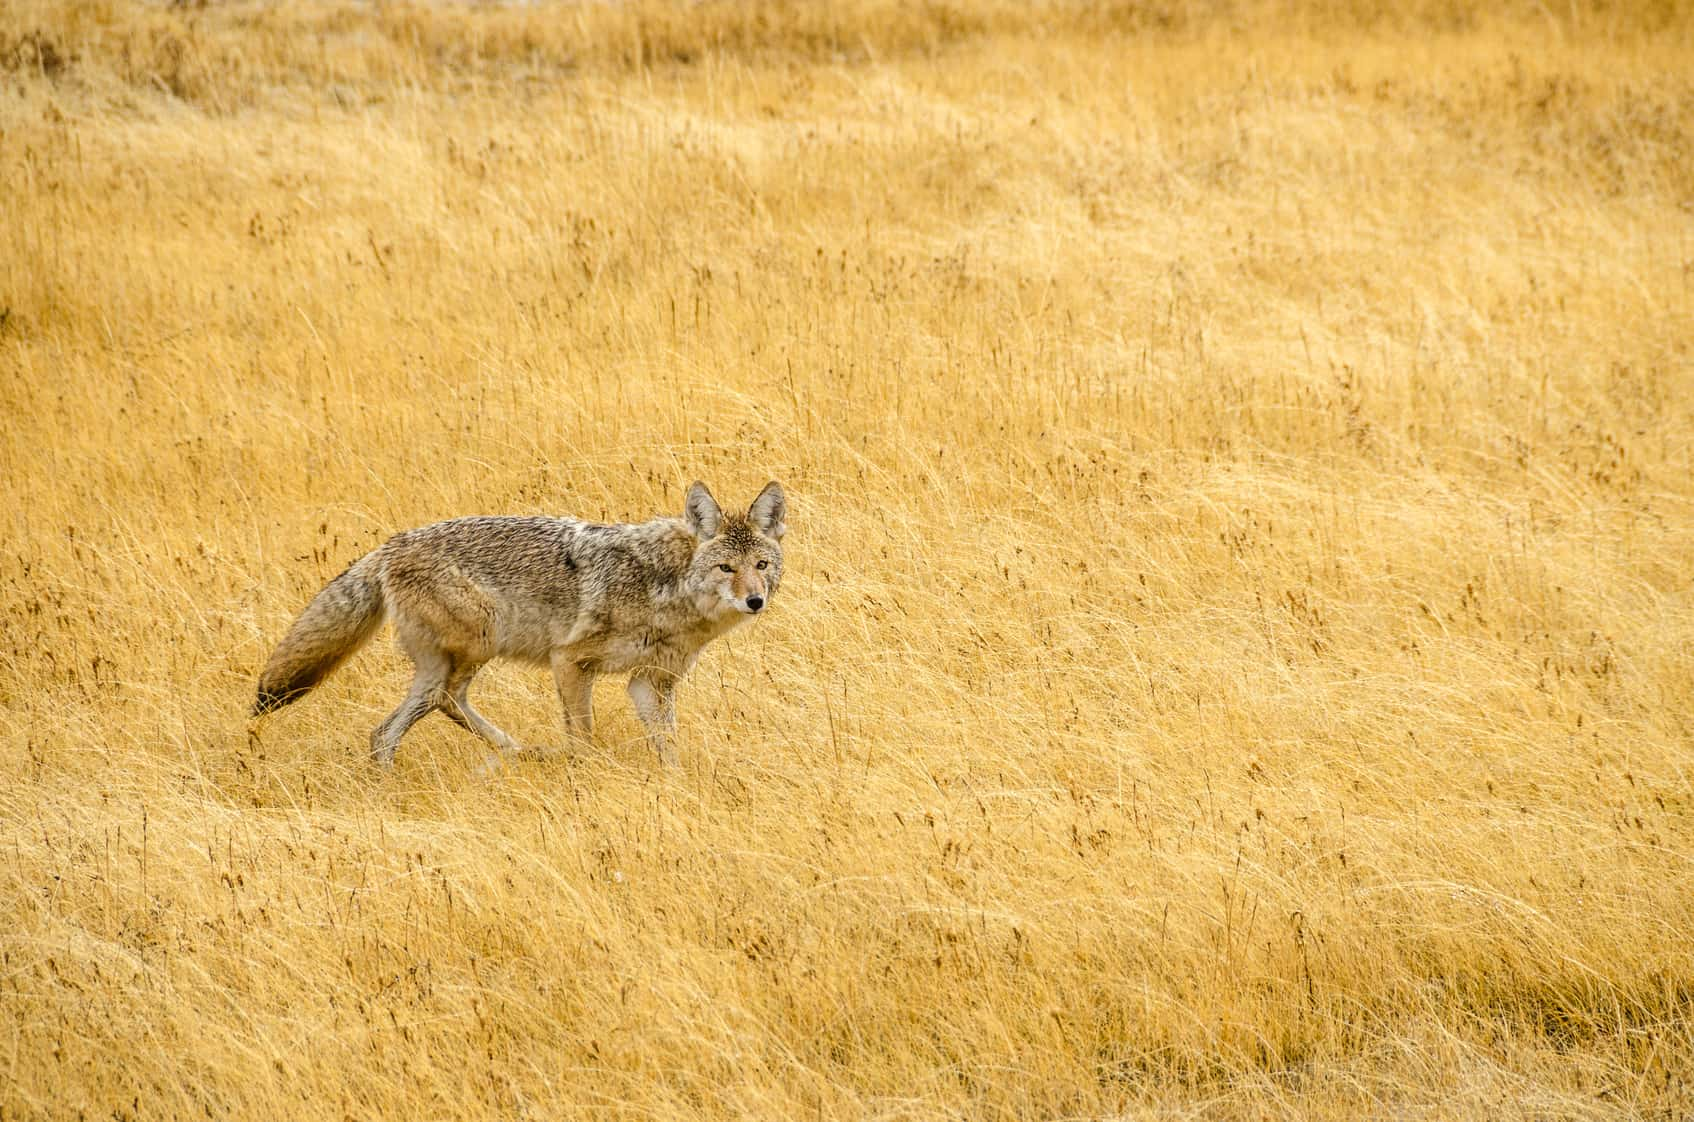 a coyote looking for prey in field